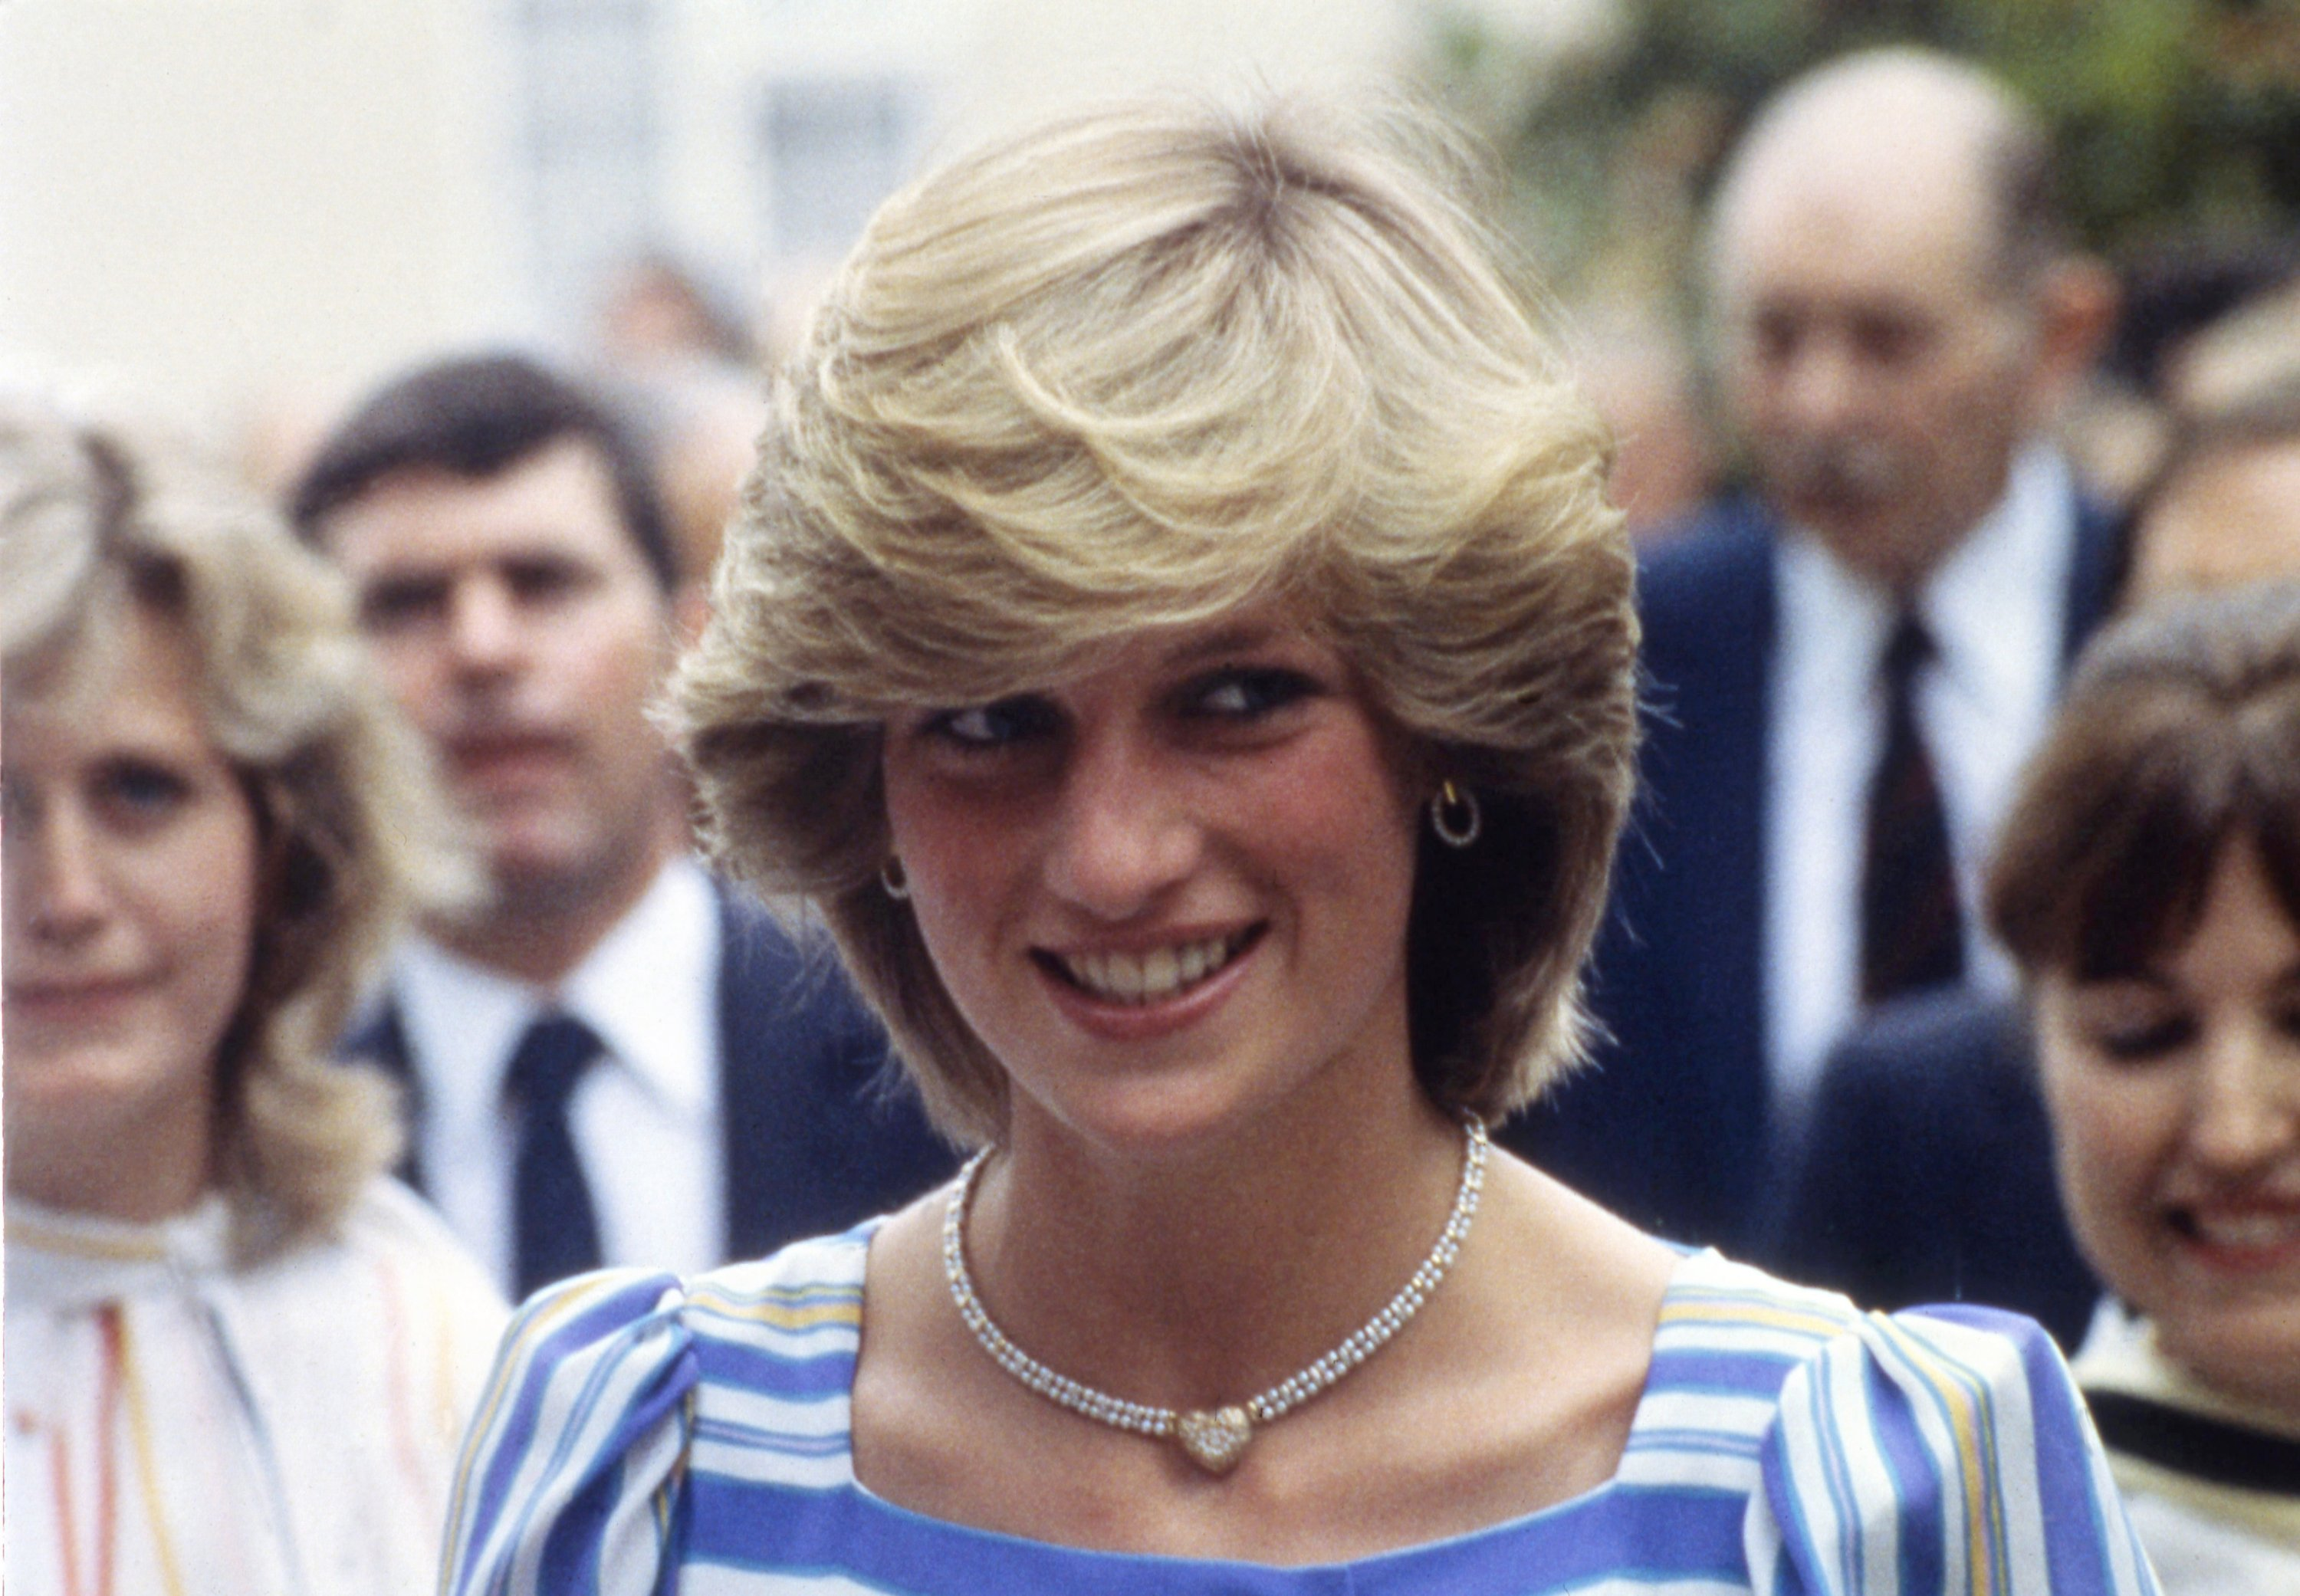 Princess Diana, the Princess of Wales, smiles during her visit to the Elmhurst Ballet School, in Camberley, Surrey, U.K., July 6, 1993. (AP Photo)